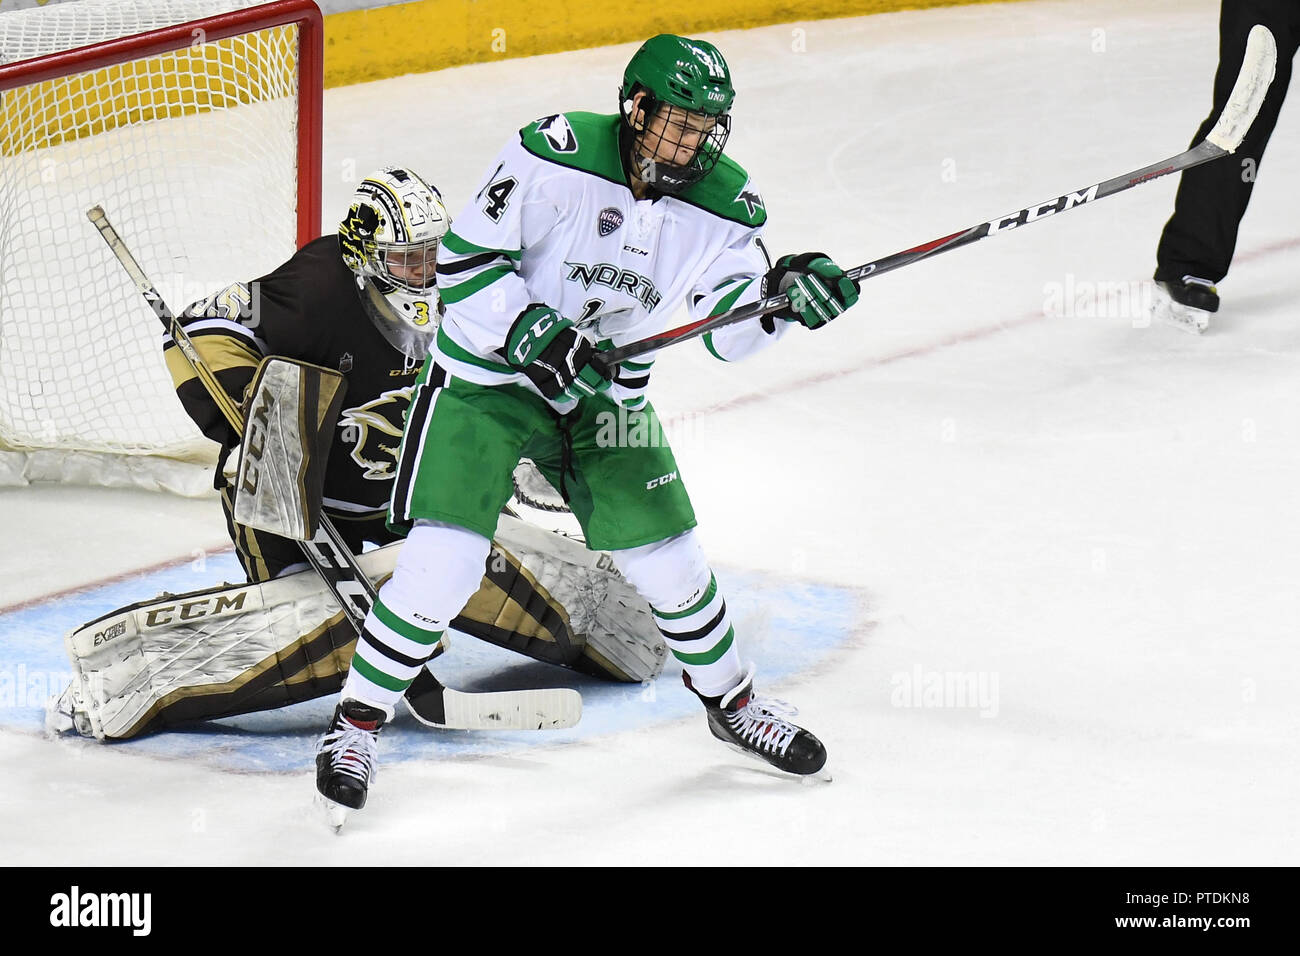 October 6, 2018 North Dakota Fighting Hawks forward Jasper Weatherby (14) takes a slapshot to the midsection in the third period of an exhibition men's college hockey game between the Manitoba Bisons and the University of North Dakota Fighting Hawks at Ralph Engelstad Arena in Grand Forks. Manitoba Bisons goaltender Byron Spriggs (35) also pictured. North Dakota won 3-2 in overtime. Photo by Russell Hons/CSM - Stock Image